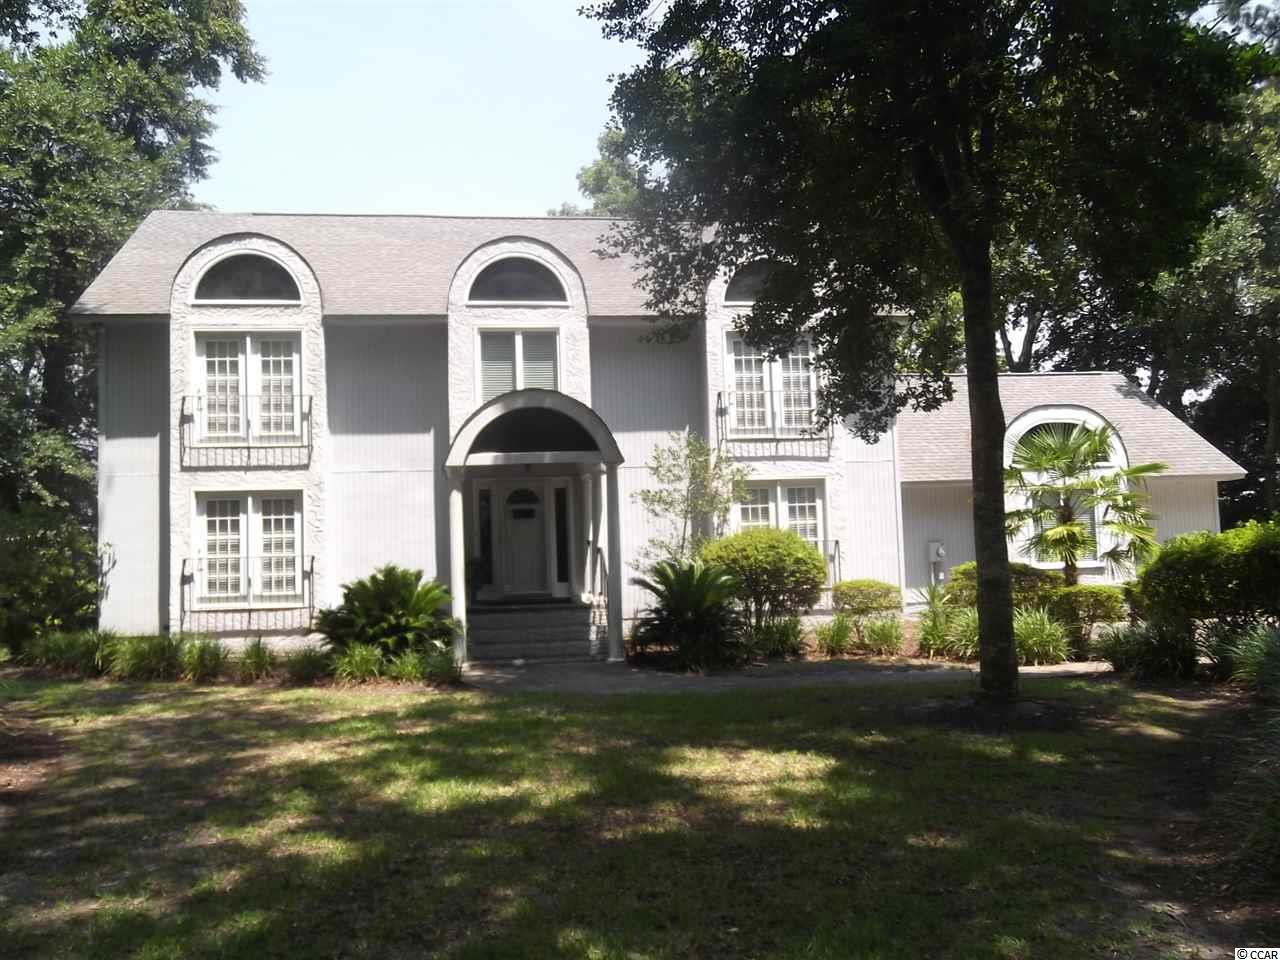 This is a very nice home in a very nice waterway community. Directly on the Intercoastal Waterway with great views. Watch the boats go by as you sit on a very large deck; also waterway views from the back of the house. Bulkhead put in a few years ago with a boat slip. This home is not in a flood zone; no flood insurance required. The lot sits up very high from the waterway. The home has a formal dining room, eat in kitchen, very large living room with a fireplace also a large den, a large wet bar with one bathroom downstairs. Very nice entry foyer. Upstairs are 3 bedrooms  and 3 bathrooms. The master bedroom is very large with a large sitting area looking at the water way with a balcony also has a fireplace in the master bedroom with a wet bar, a large master bath with a jetted tub. There is another large bedroom that looks over the water way with a balcony. Then another good size  bedroom, laundry room upstairs with the bedrooms. Over size 2 car garage. The community is located near everything and anything anyone would need or want to do. Many restaurants near by also shopping, many golf courses and only a few minutes to the beach. This is a well built home with a few upgrades would make a great home. Very private setting which you will enjoy. So do yourself a favor and view this home.  I do not think you will be disappointed. All information to be verified by the buyer